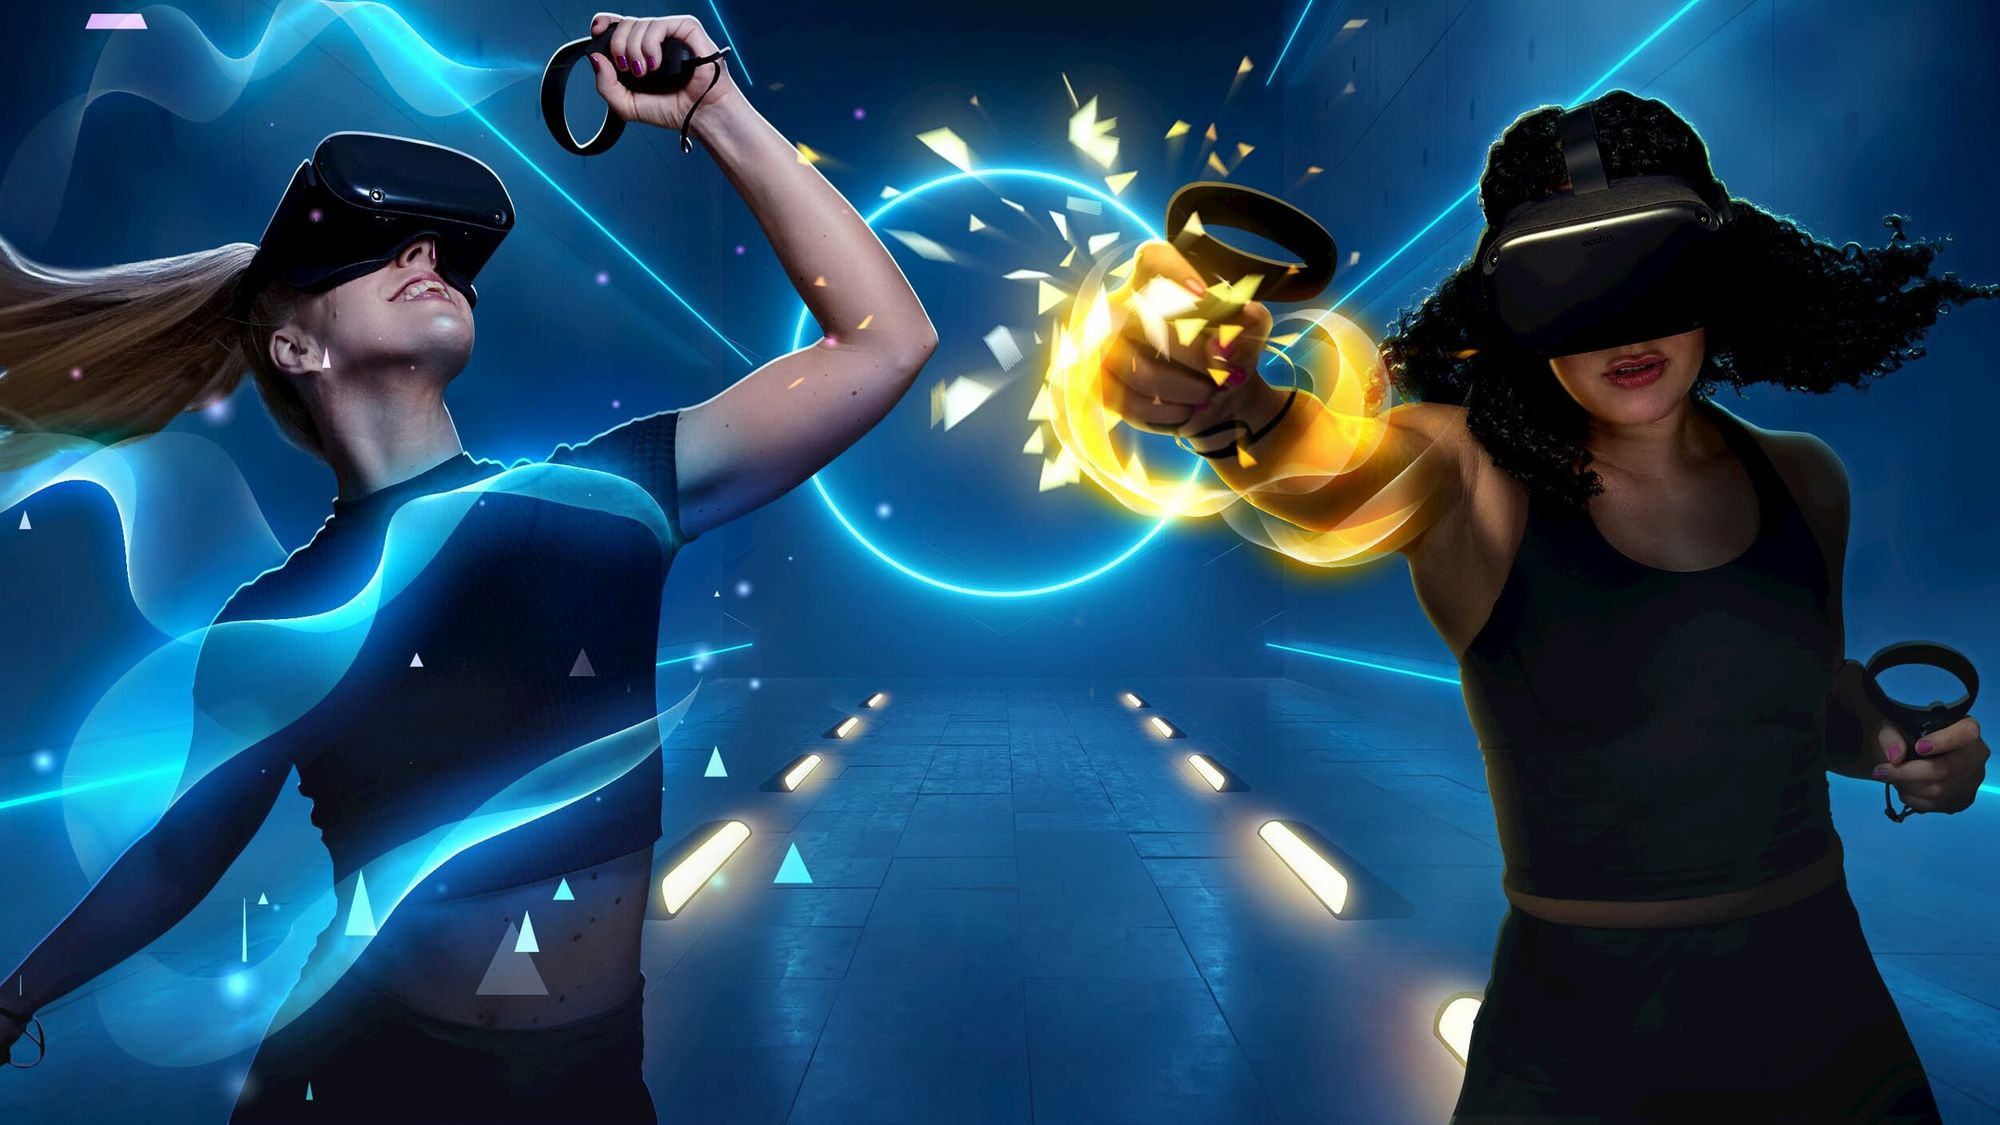 FitXR's Boxing & Dancing DLC Available Now On Oculus Quest